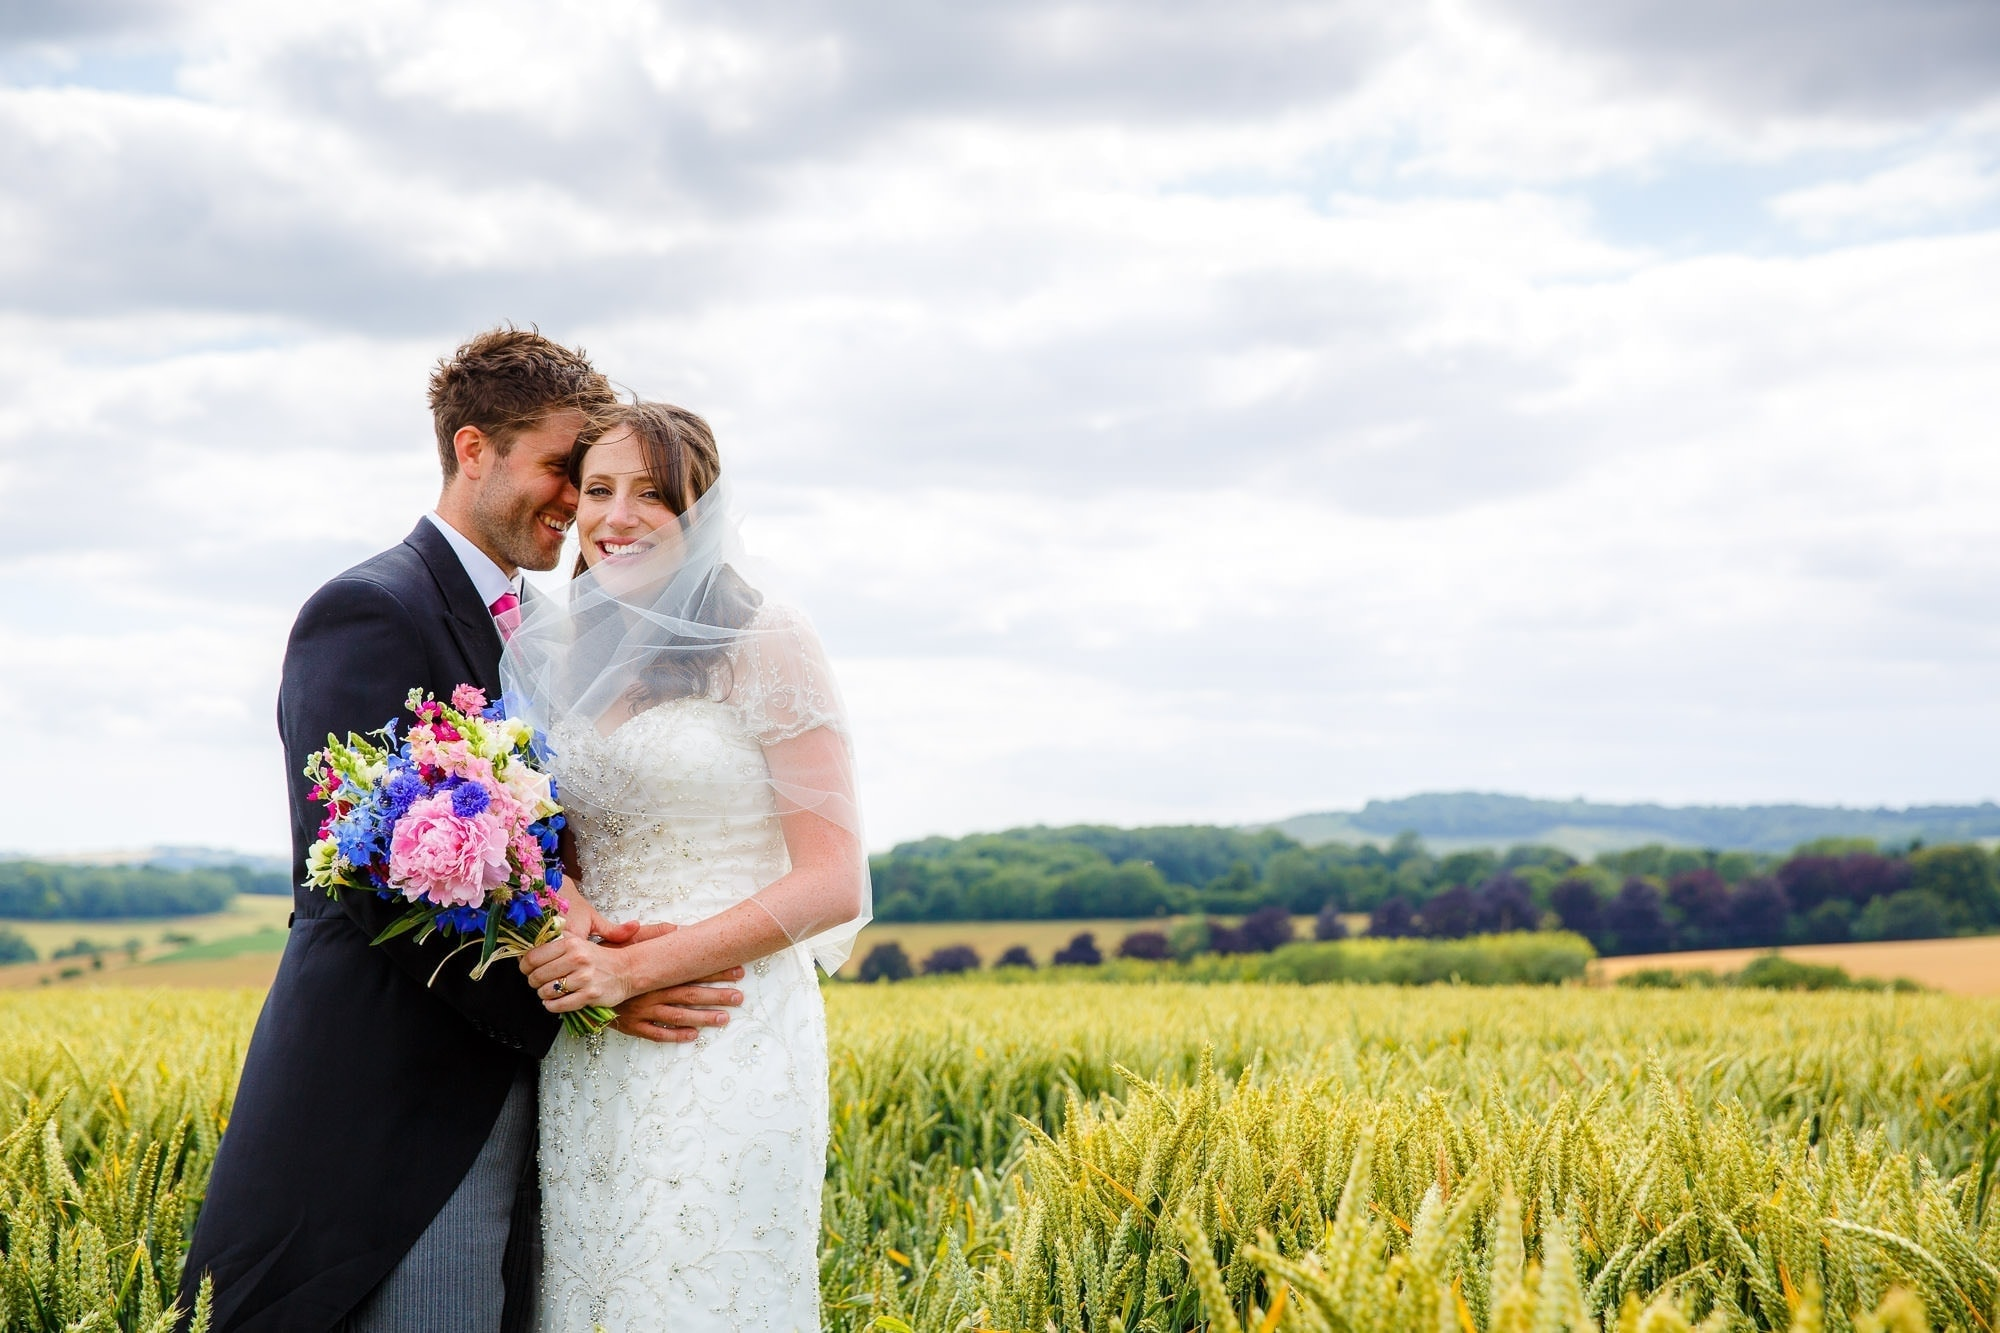 Tipi Wedding Hampshire - Wedding Couple Portraits in Corn Field